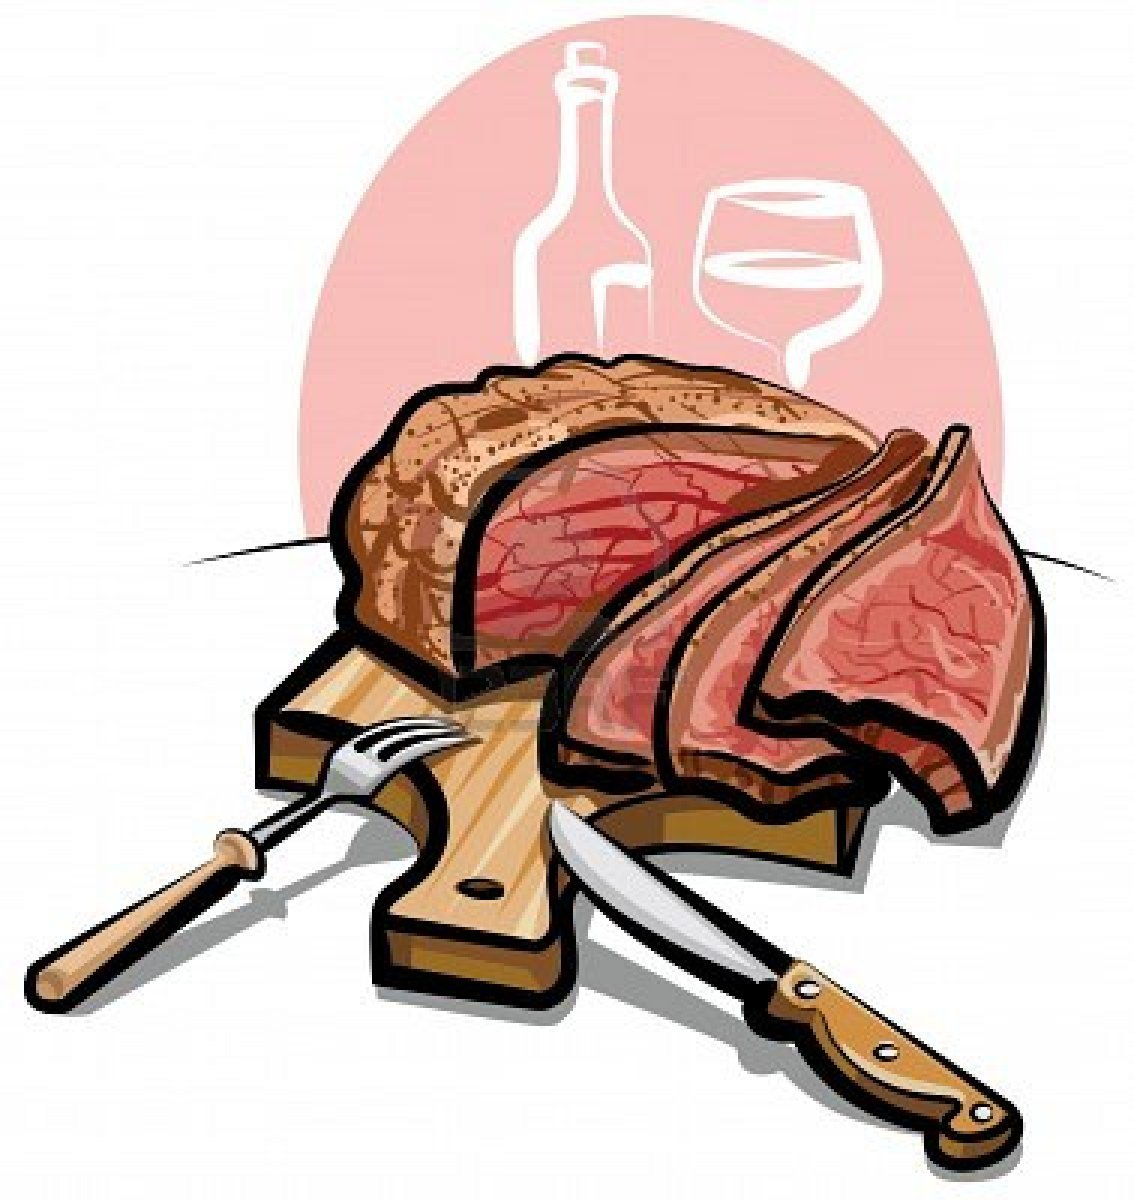 Prime rib dinner black and white clipart svg black and white library Prime rib dinner clipart 4 » Clipart Portal svg black and white library